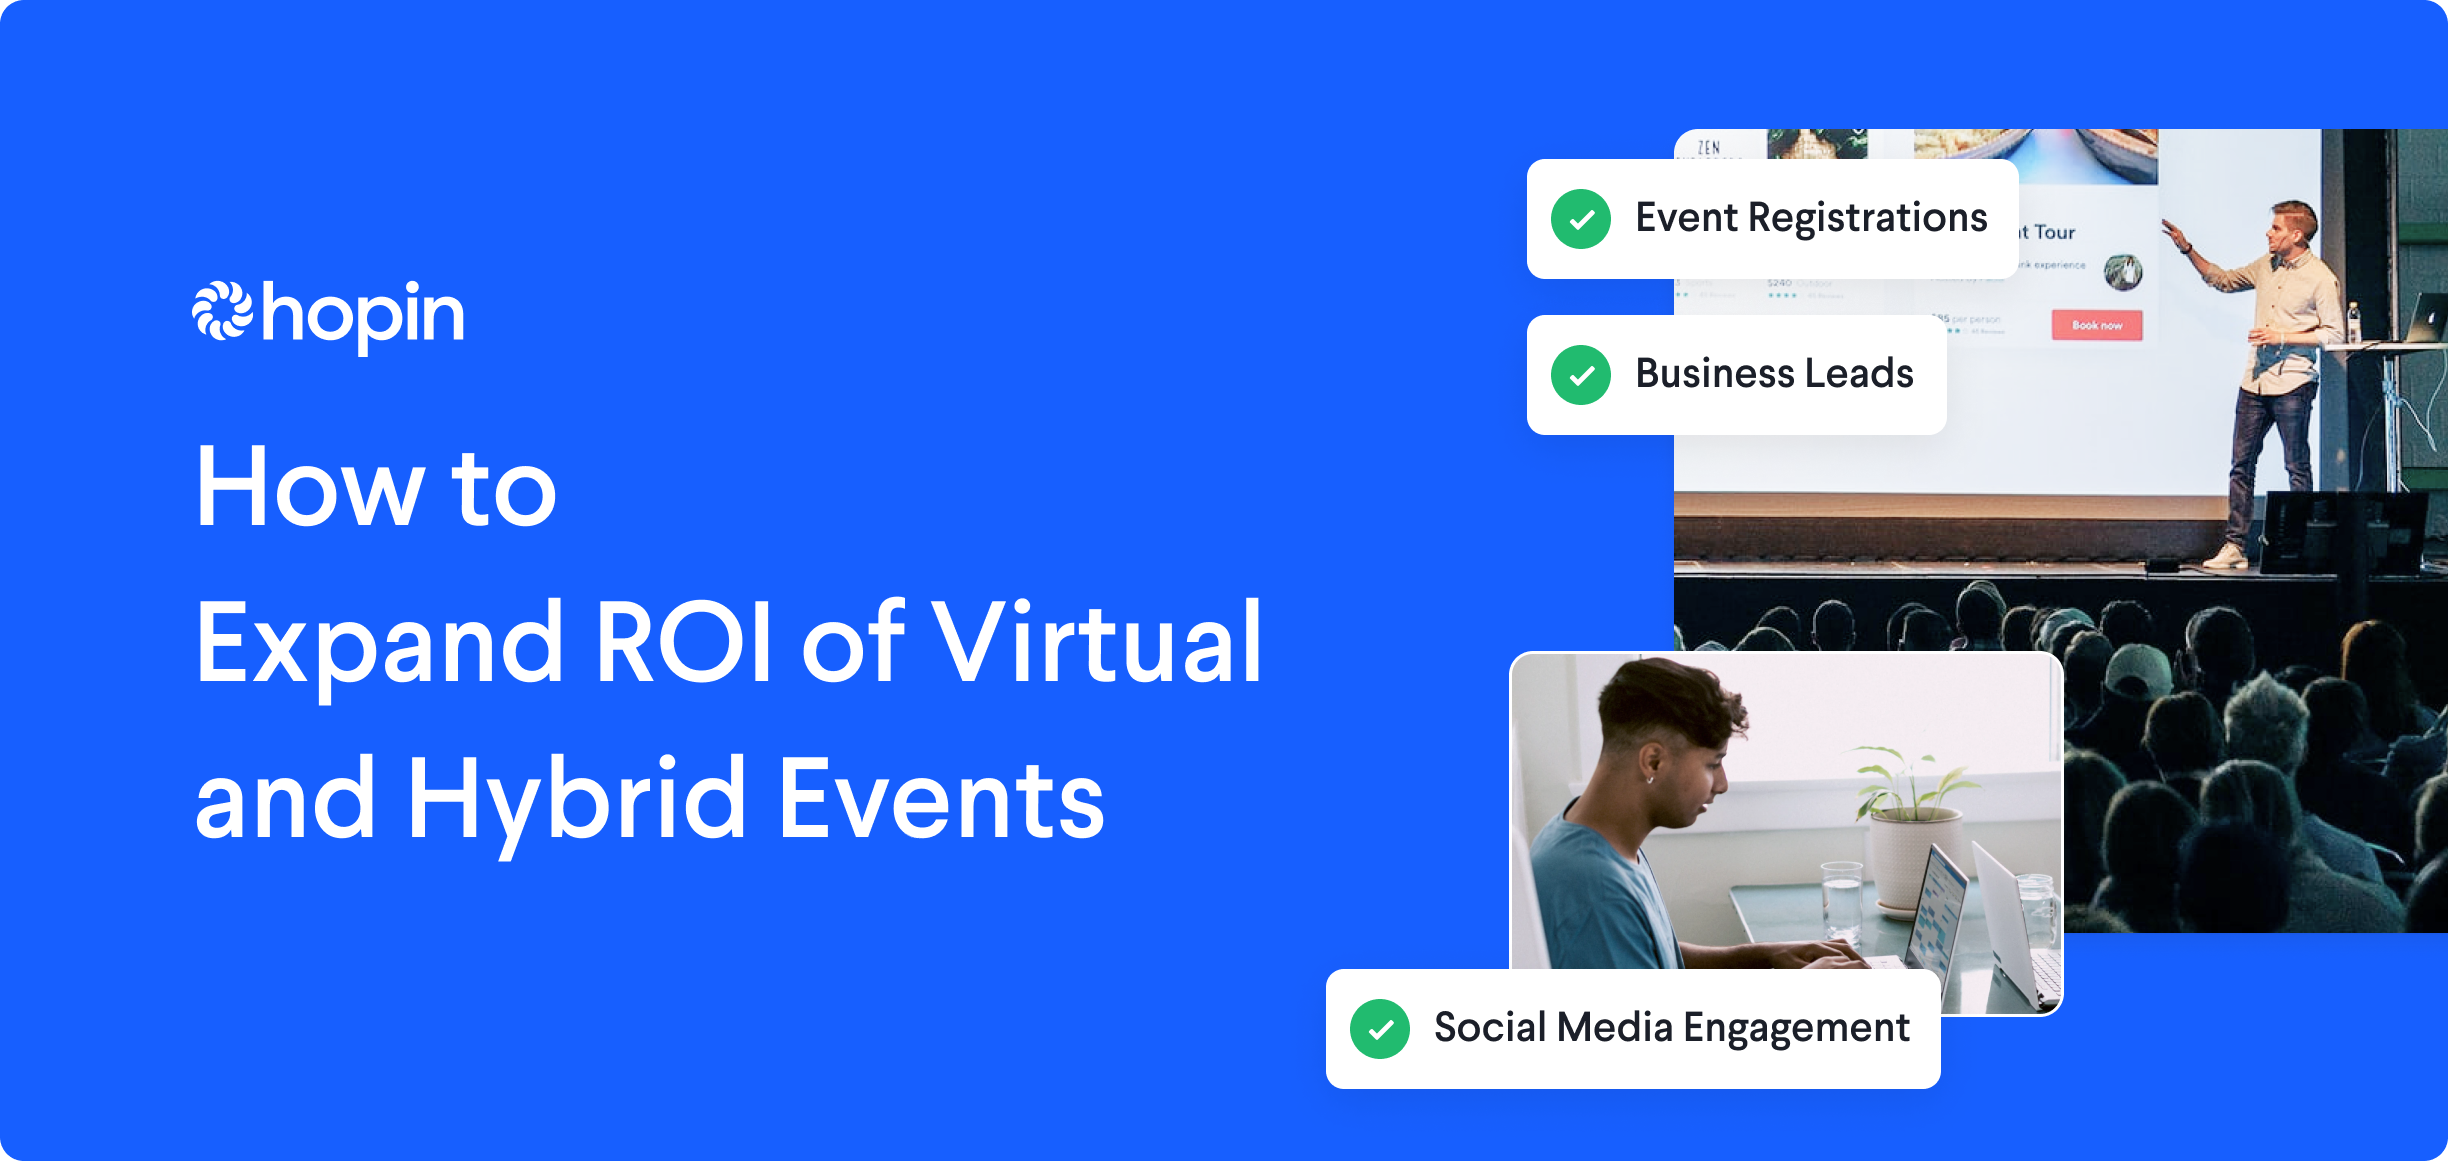 Virtual and hybrid events allow for greater reach at reduced cost—dramatically shifting the event ROI calculus. Learn how to calculate event ROI and discover strategies to expand ROI for online and hybrid events.